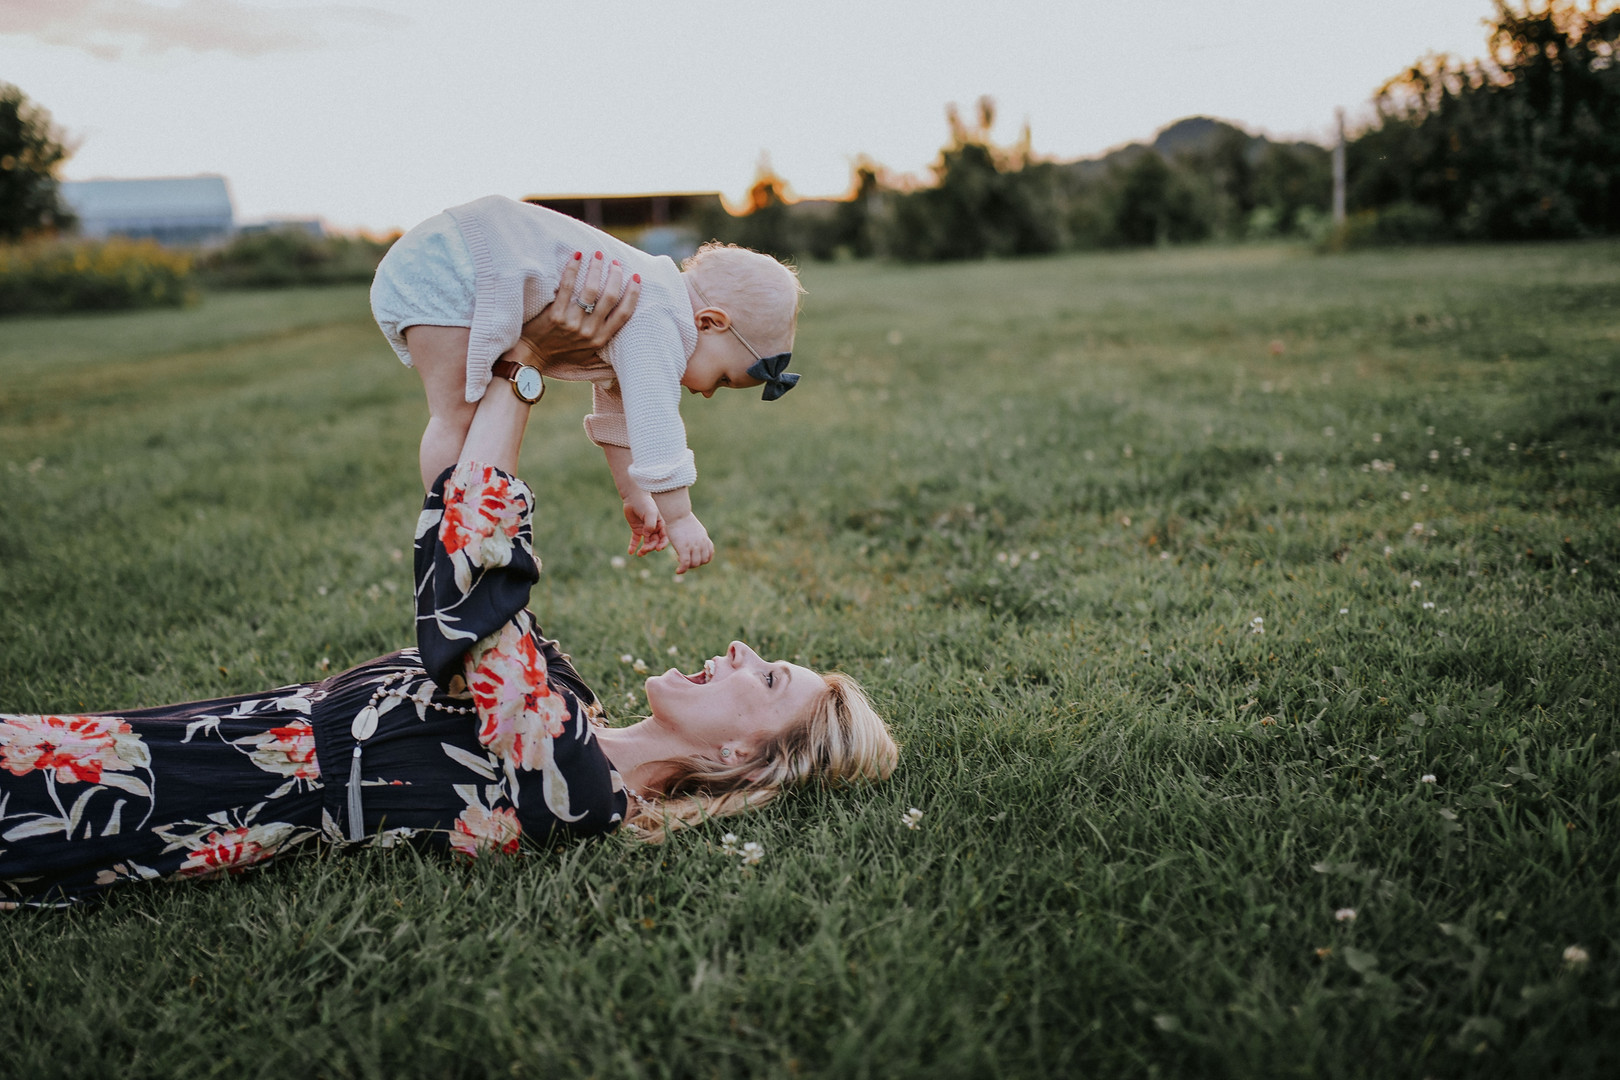 Trempealeau Wisconsin Outdoor Unposed Lifestyle Family Photographer Apple Orchard